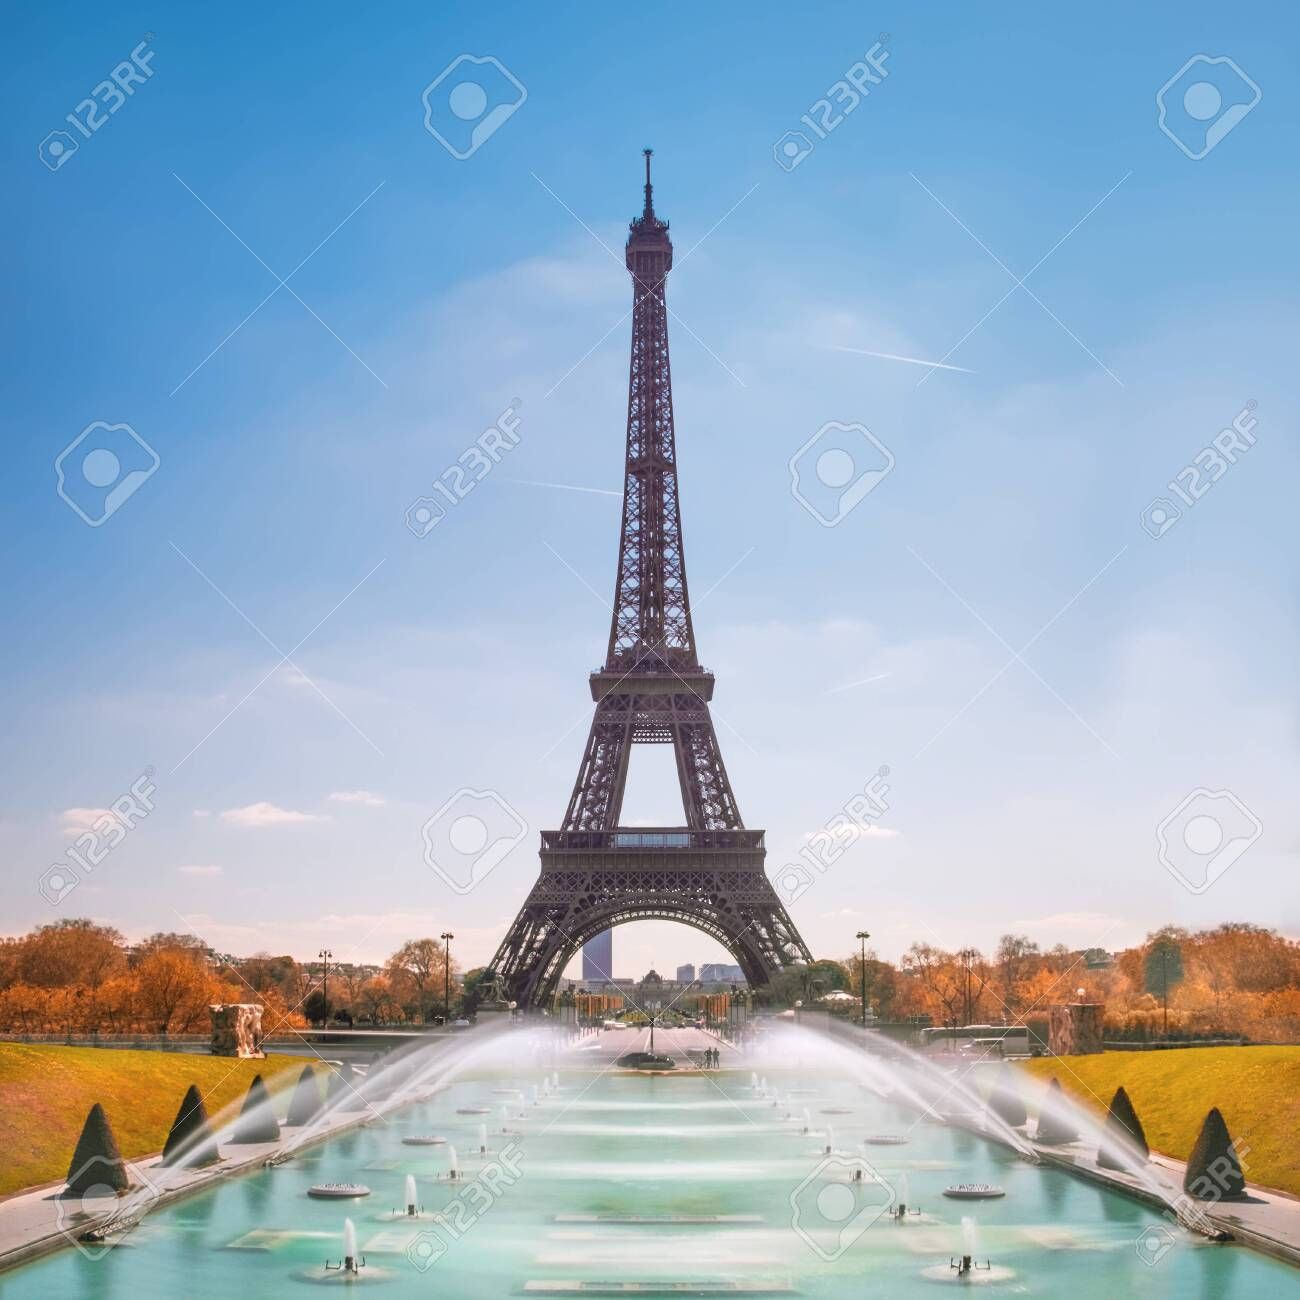 Paris. Eiffel Tower and Trocadero fountains on a sunny day in Fall - 132295300